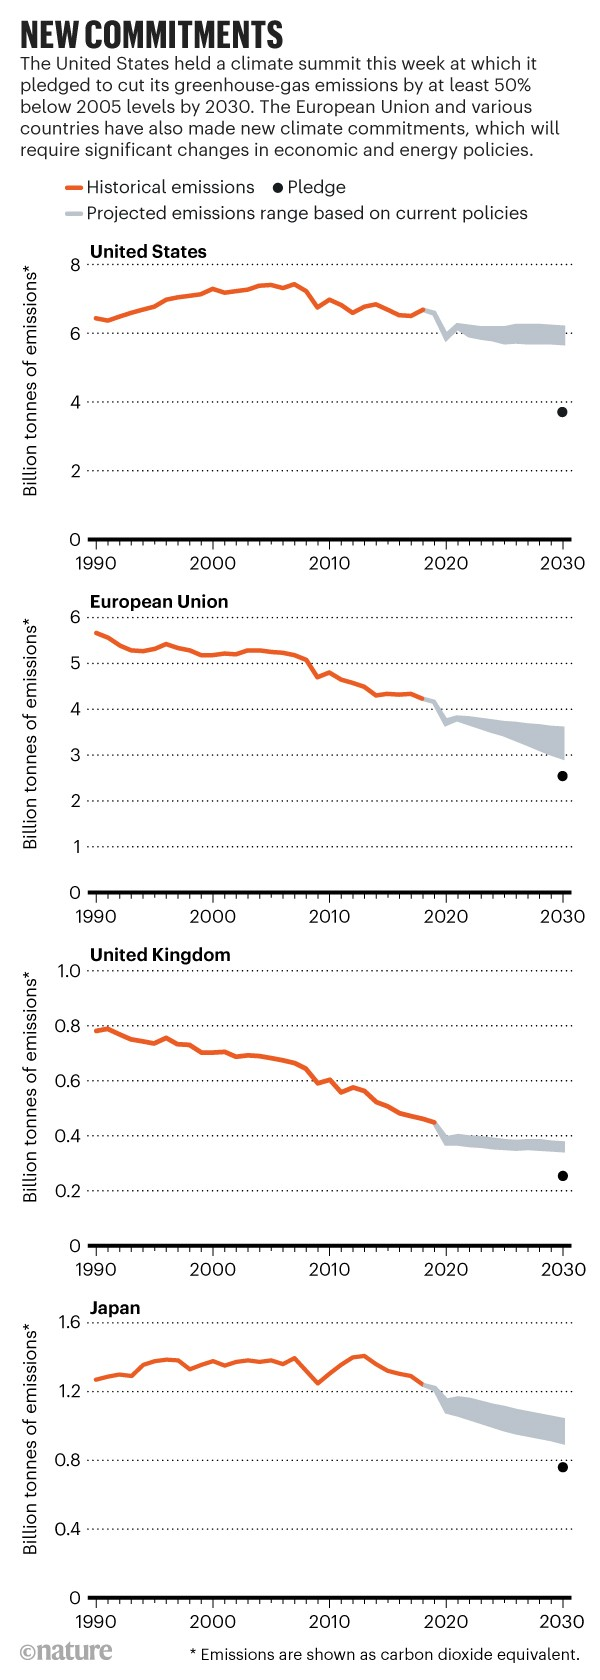 New commitments: Historic emissions, projected emissions and pledged emission reductions for the US, EU, UK and Japan.